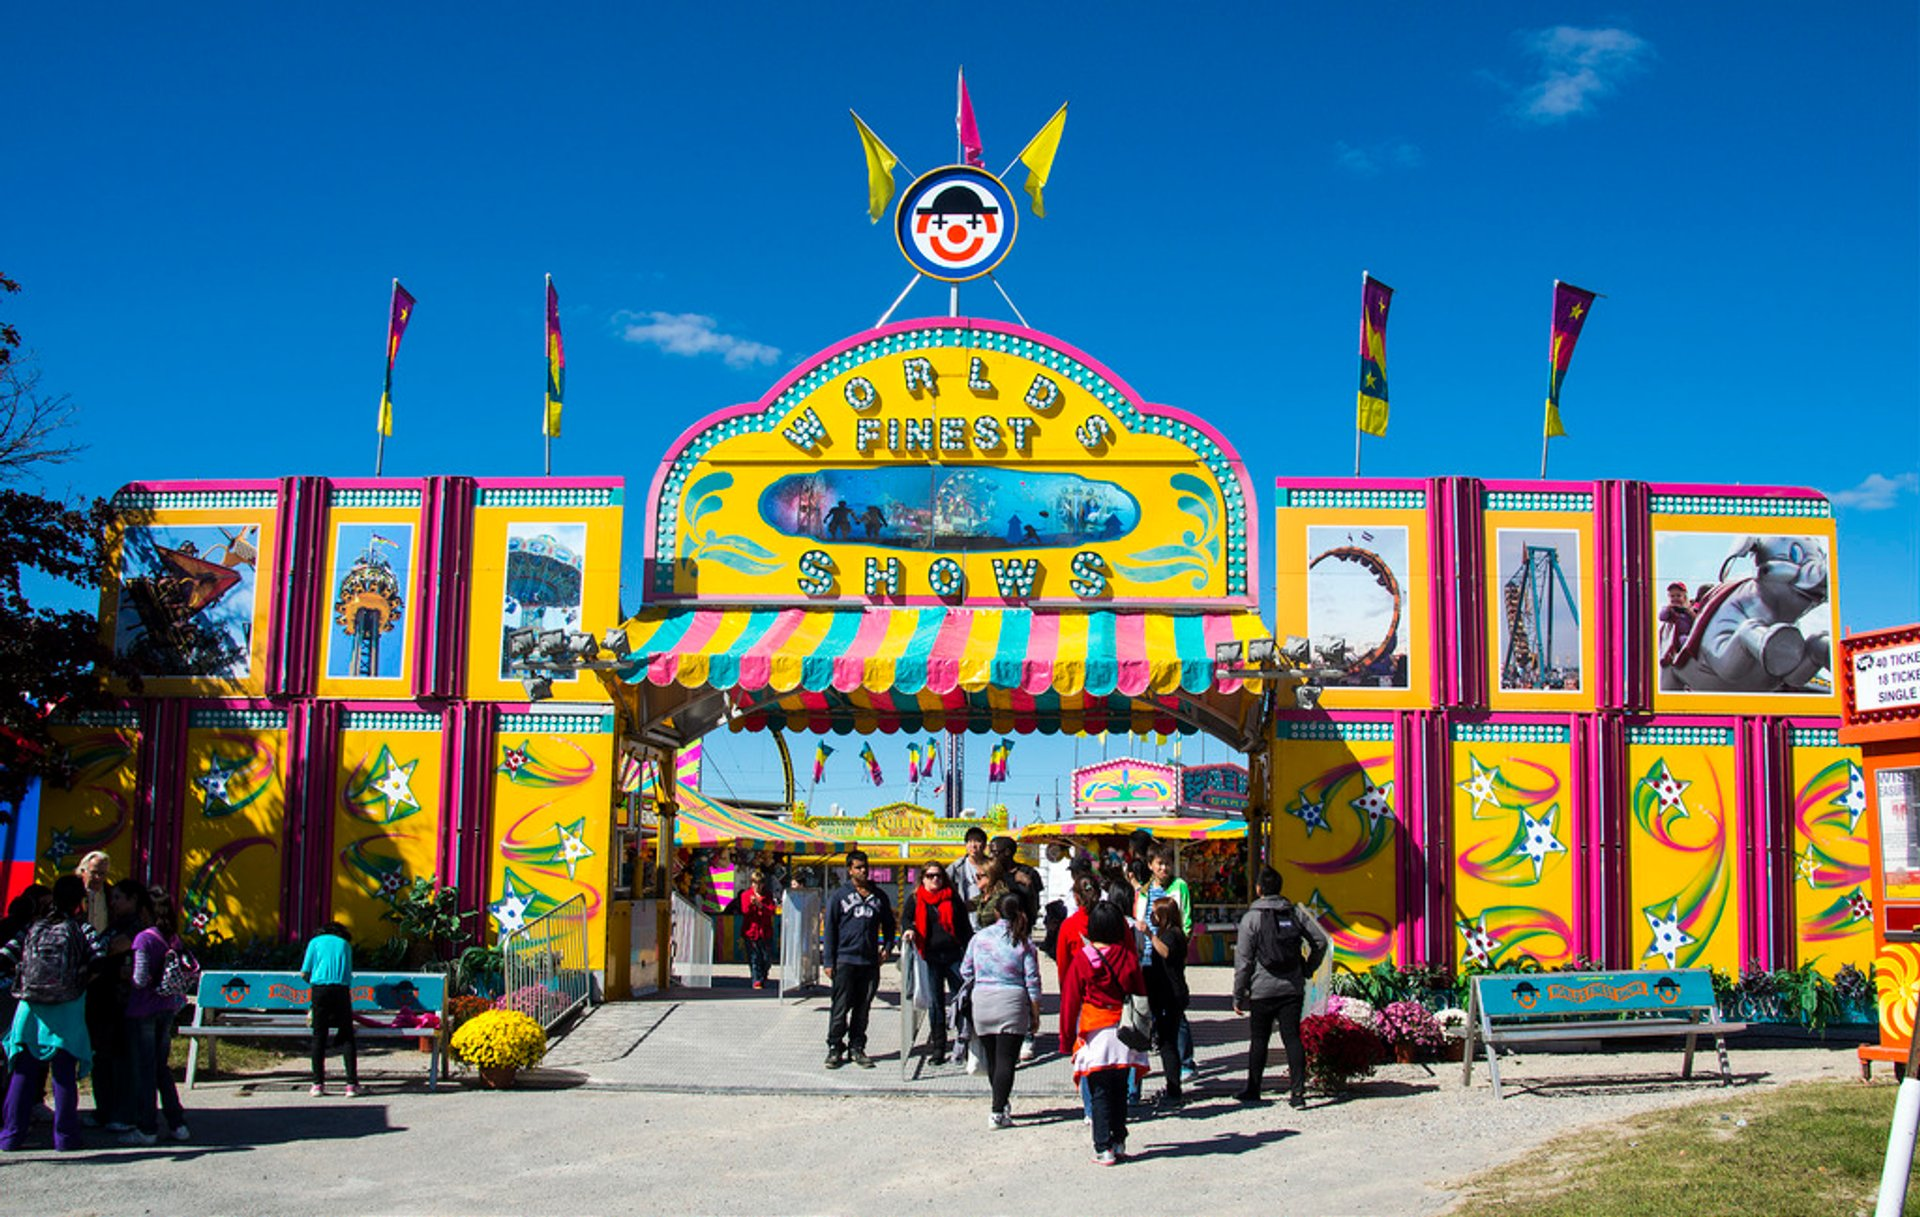 Markham Fair in Toronto 2020 - Best Time